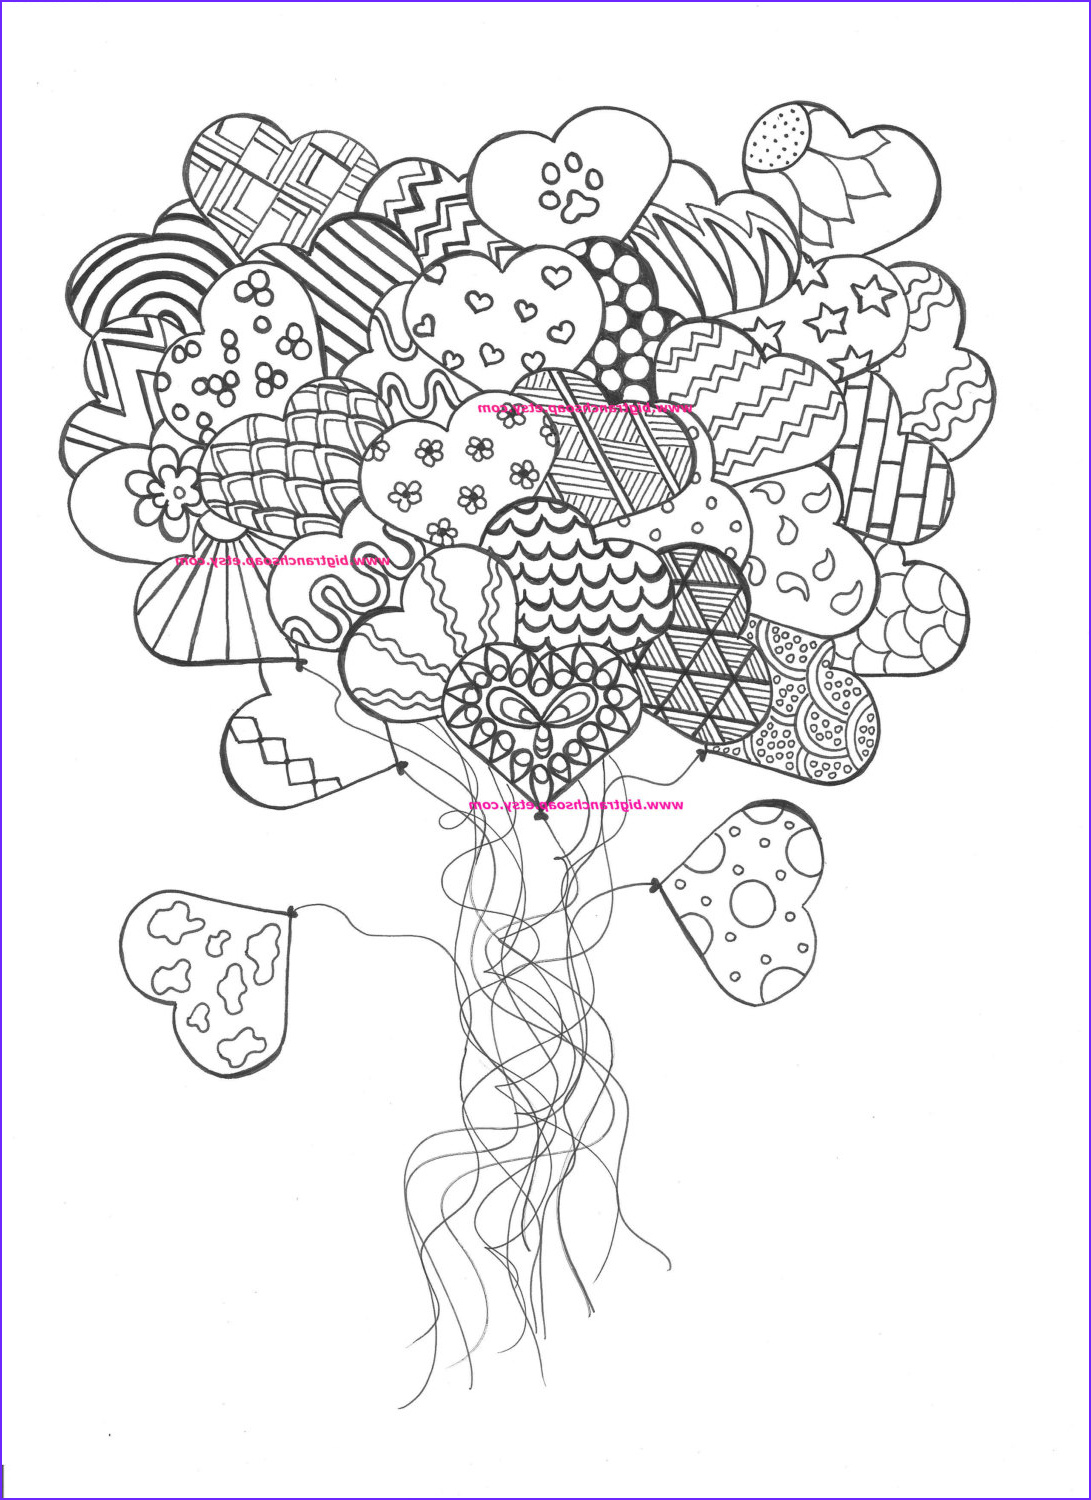 Coloring Page for Adults Hearts Beautiful Image Adult Coloring Page for Grown Ups Heart by Bigtranchsoap